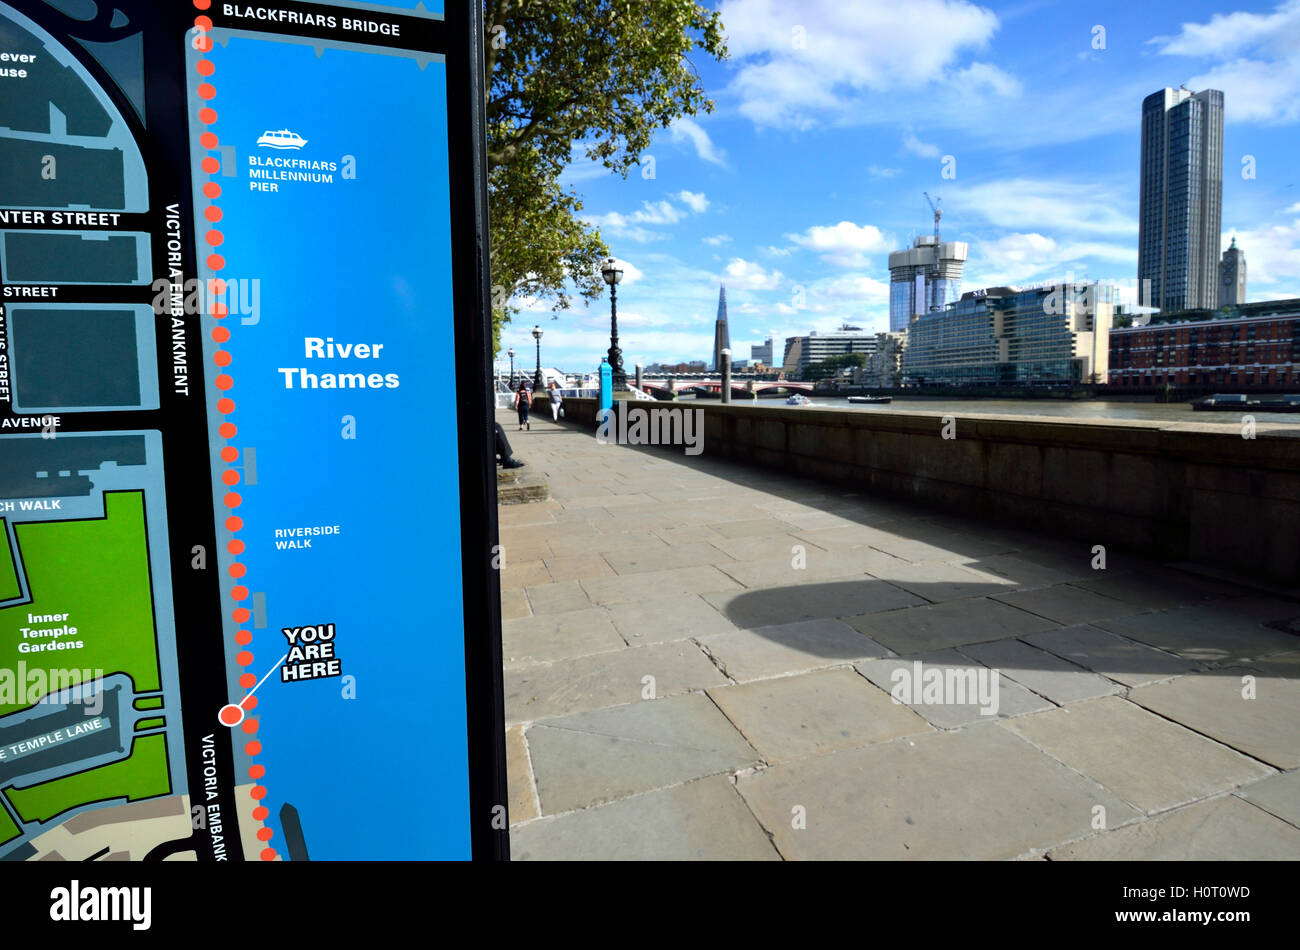 London, England, UK. 'You are here' tourist information map on the Victoria Embankment by the River Thames. Stock Photo